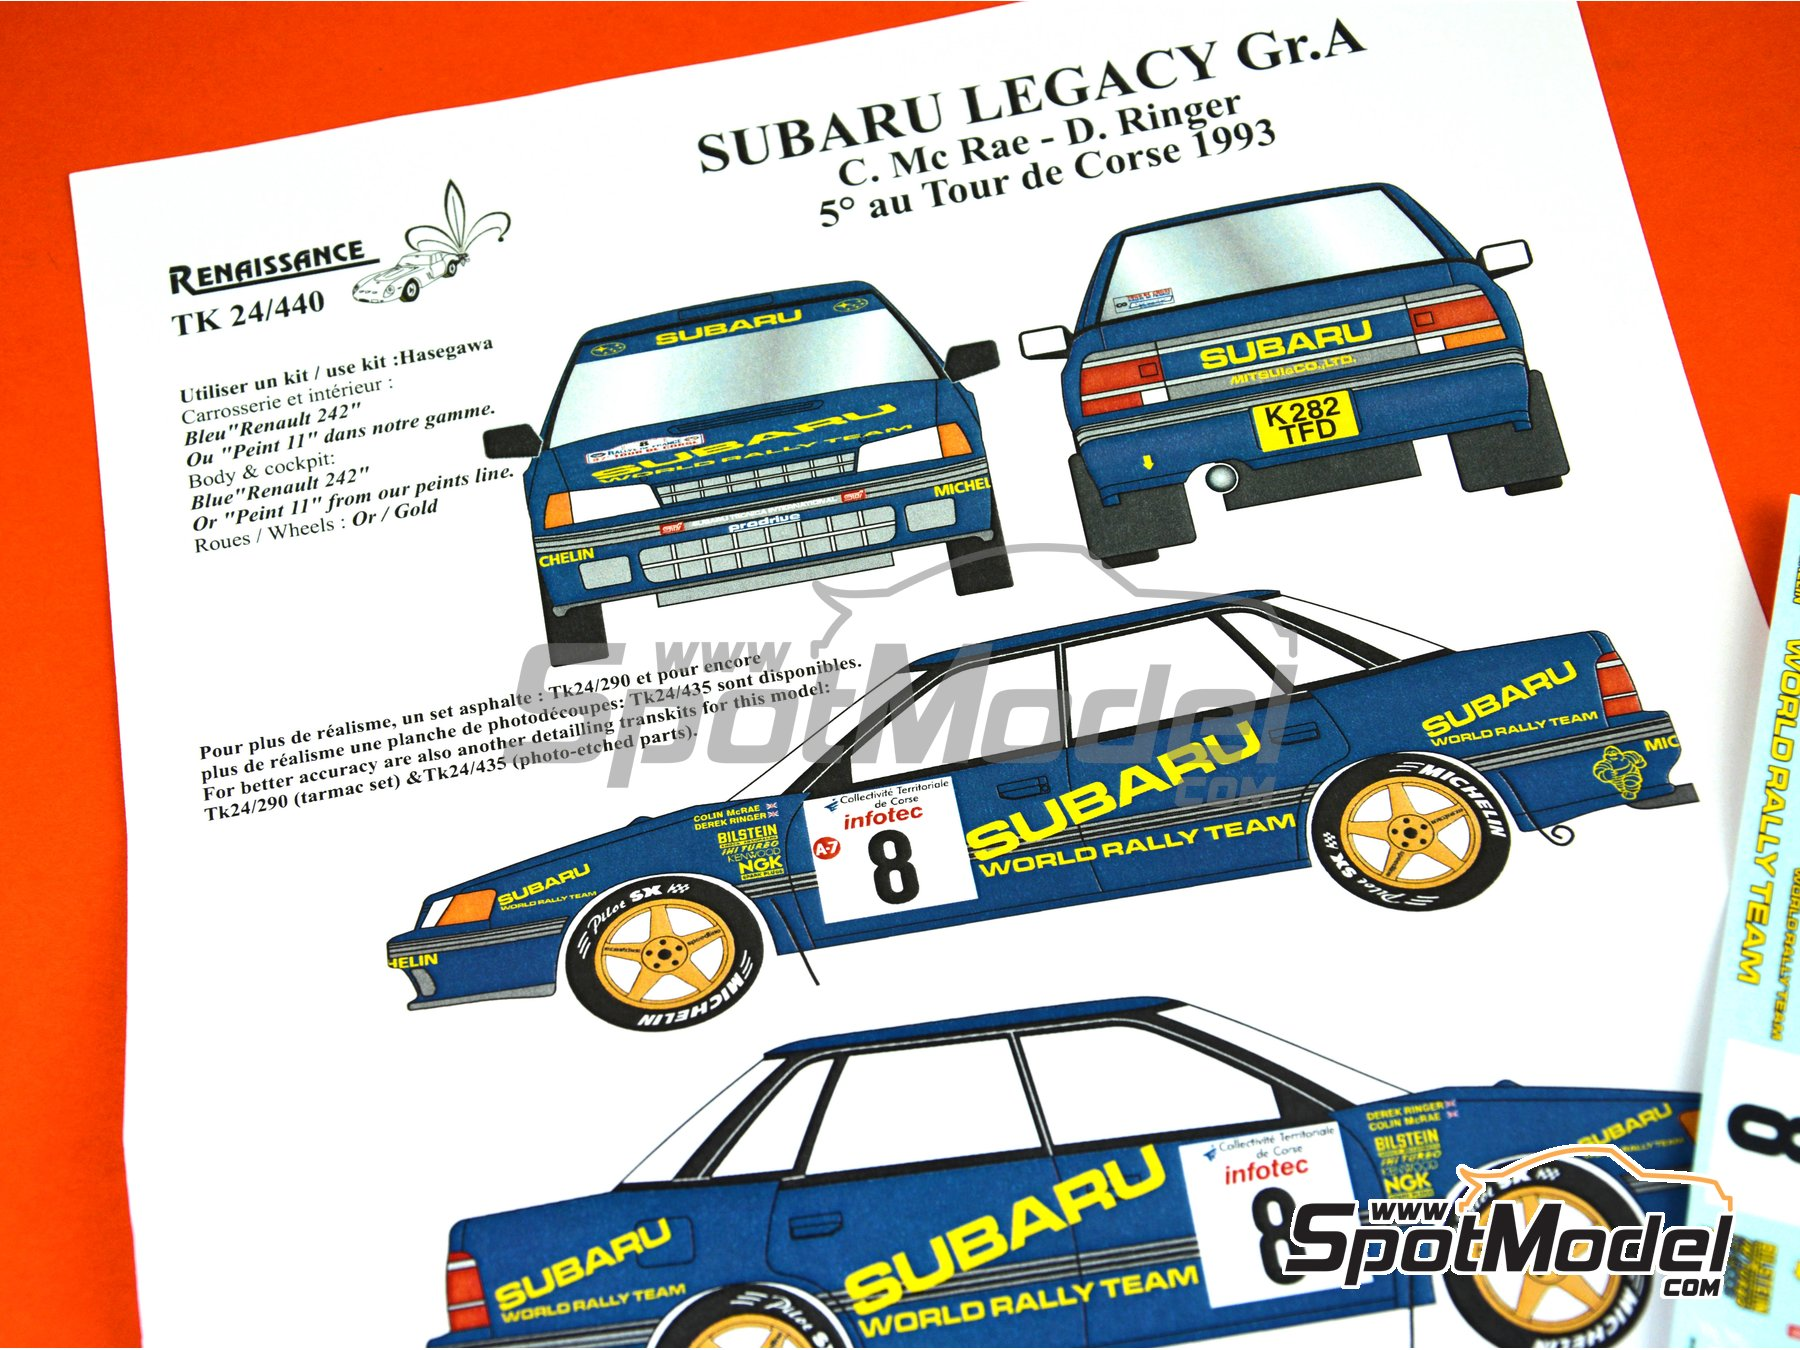 Image 6: Subaru Legacy Group A - Tour de Corse 1993 | Marking / livery in 1/24 scale manufactured by Renaissance Models (ref. TK24-440)